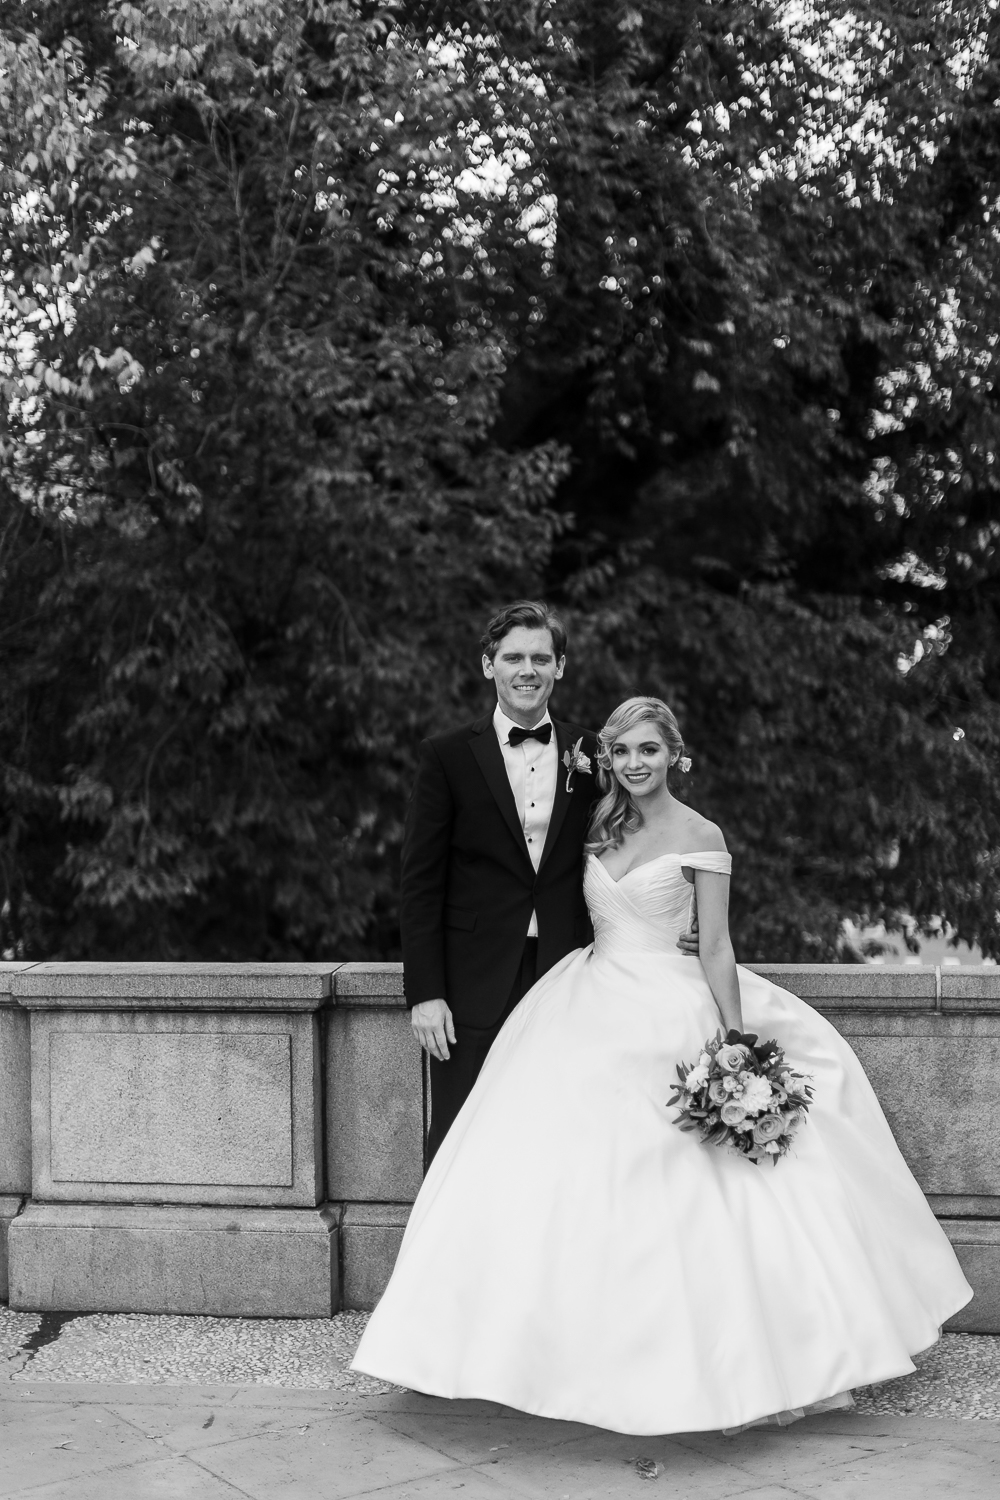 Classic black and white wedding photo of a bride and groom.